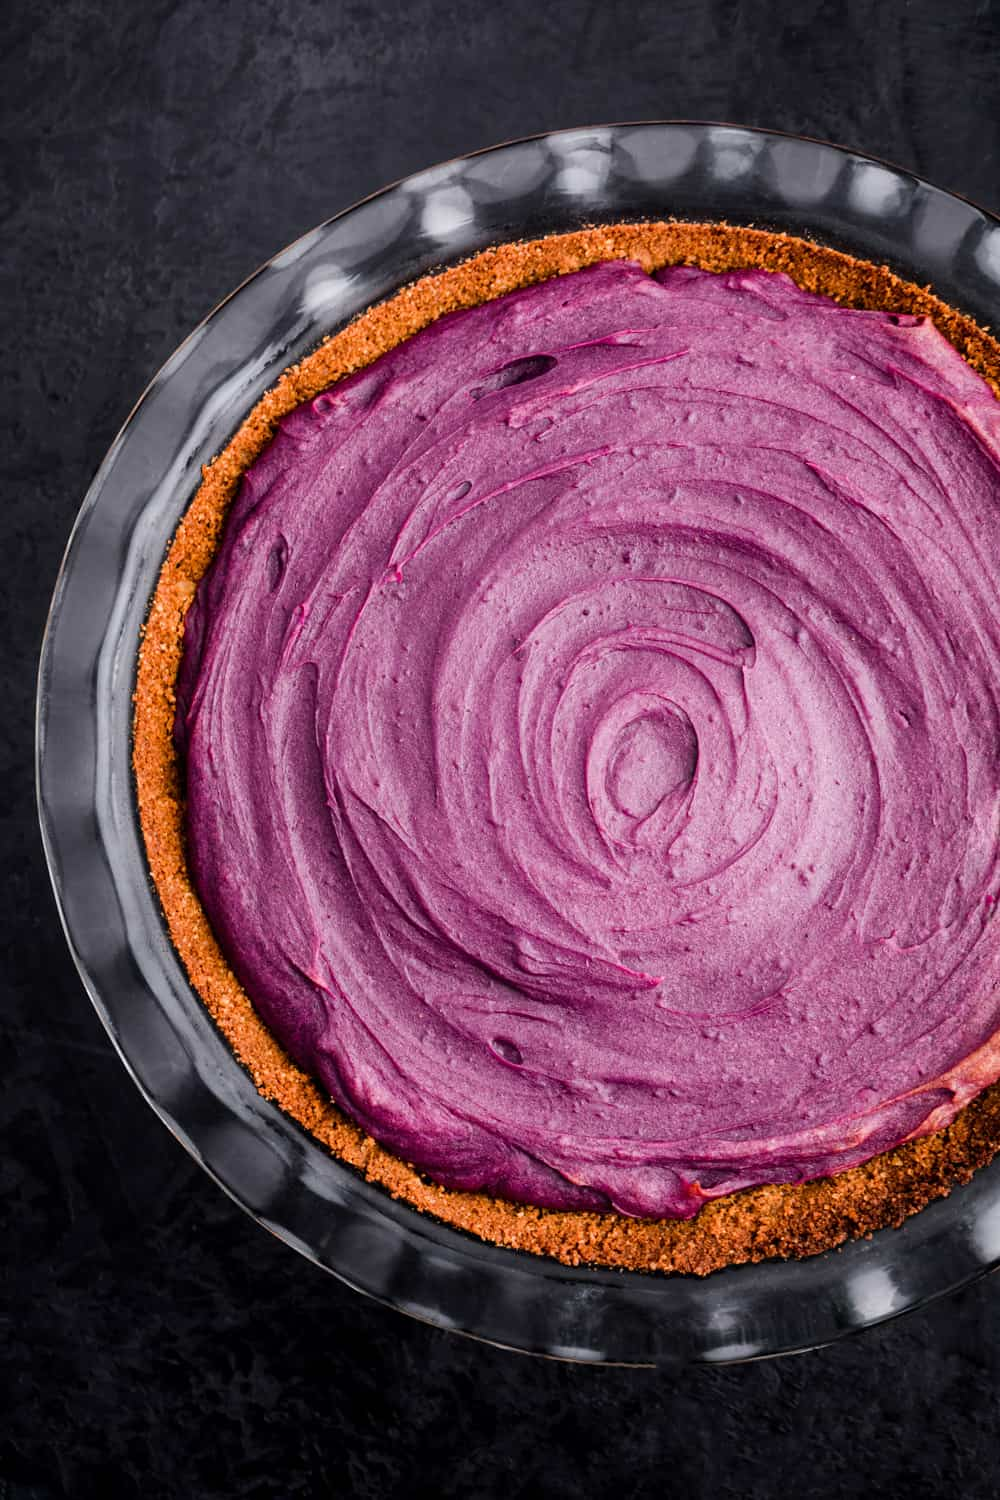 Purple sweet potato pie just out of oven and ready for pecan streusel topping; overhead shot on a black background.